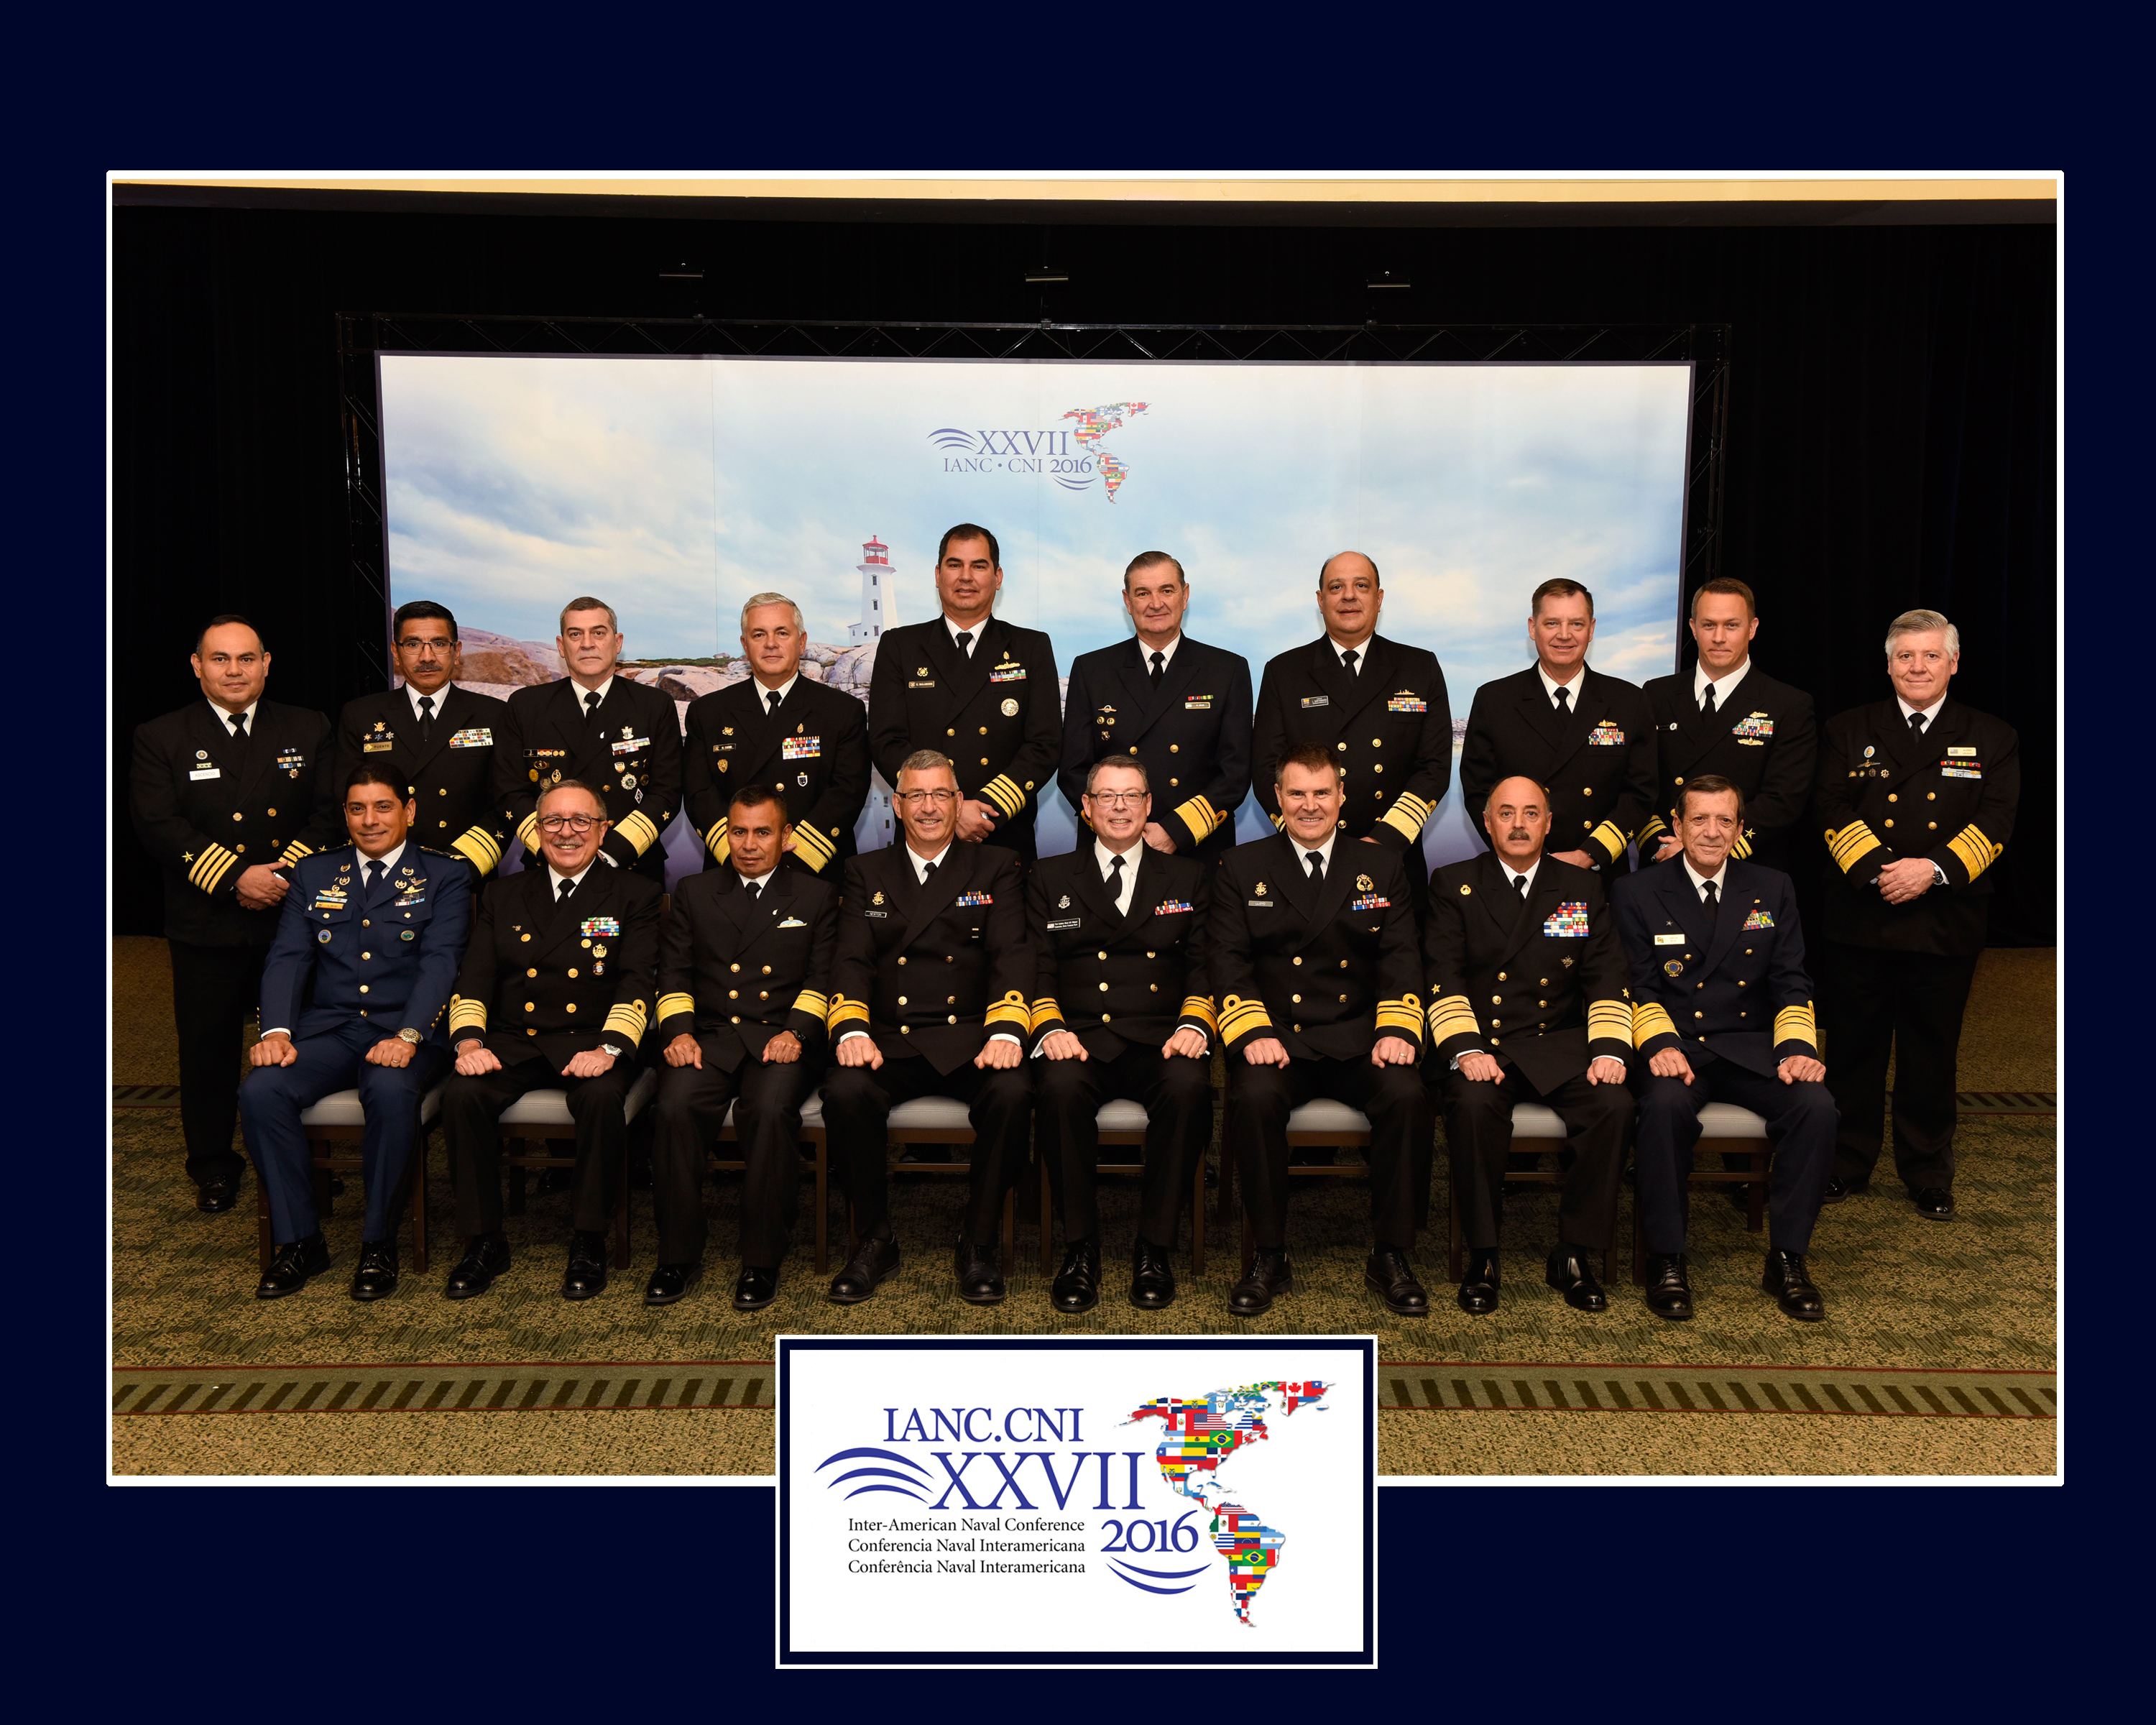 Official delegate photo from the 27th Inter-American Naval Conference held in Halifax in June 2016.